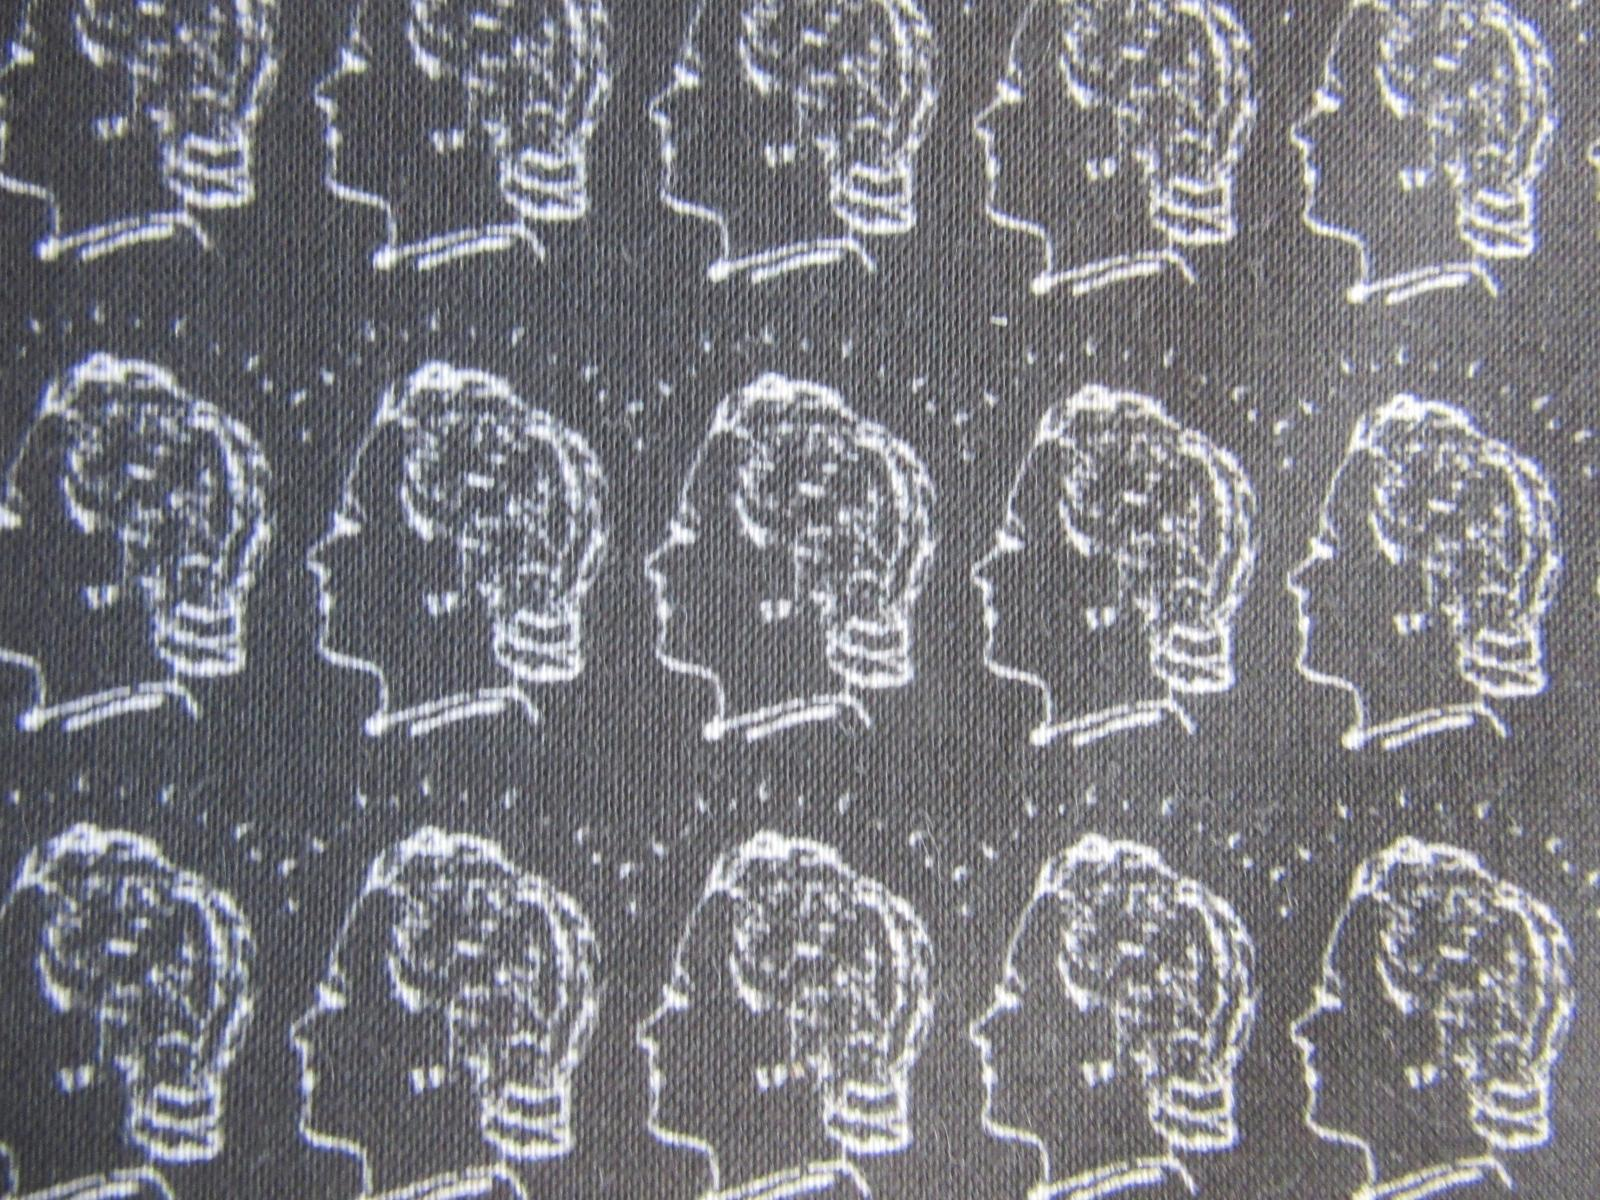 Patterned fabric design for our GWL facemasks, in white on black with the 'Women in Profile' logo from GWL's precursor, a woman's head with short lines radiating outwards.